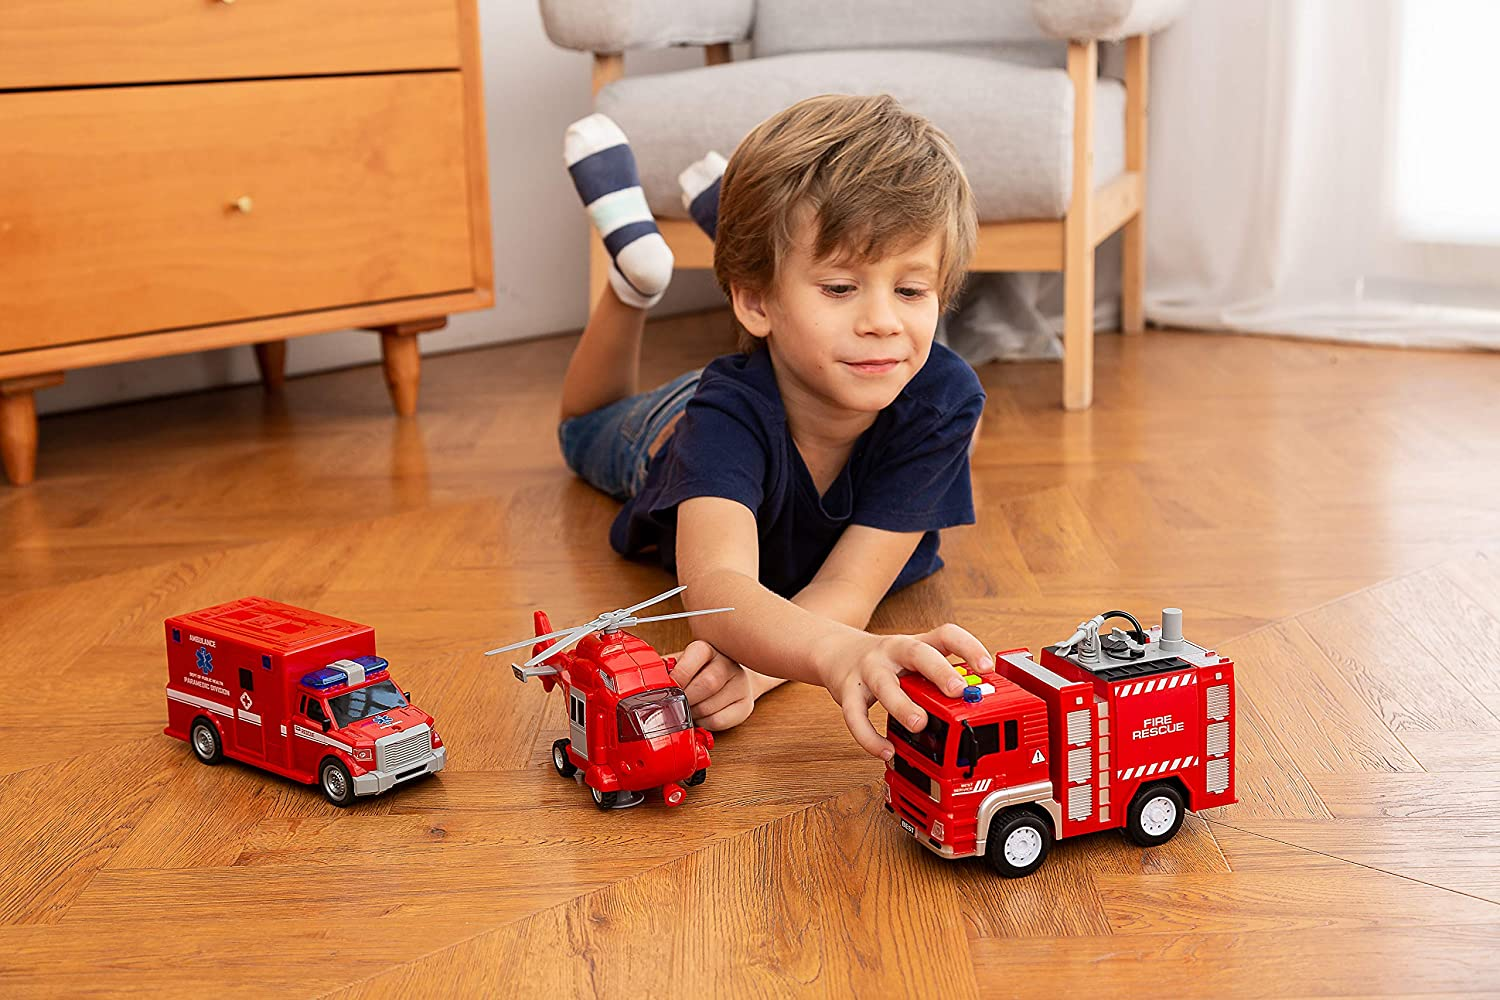 Ambulance Joyin 3 in 1 Friction Powered City Fire Rescue Vehicle Truck Car Set Including Helicopter with Light and Sound and Fire Engine